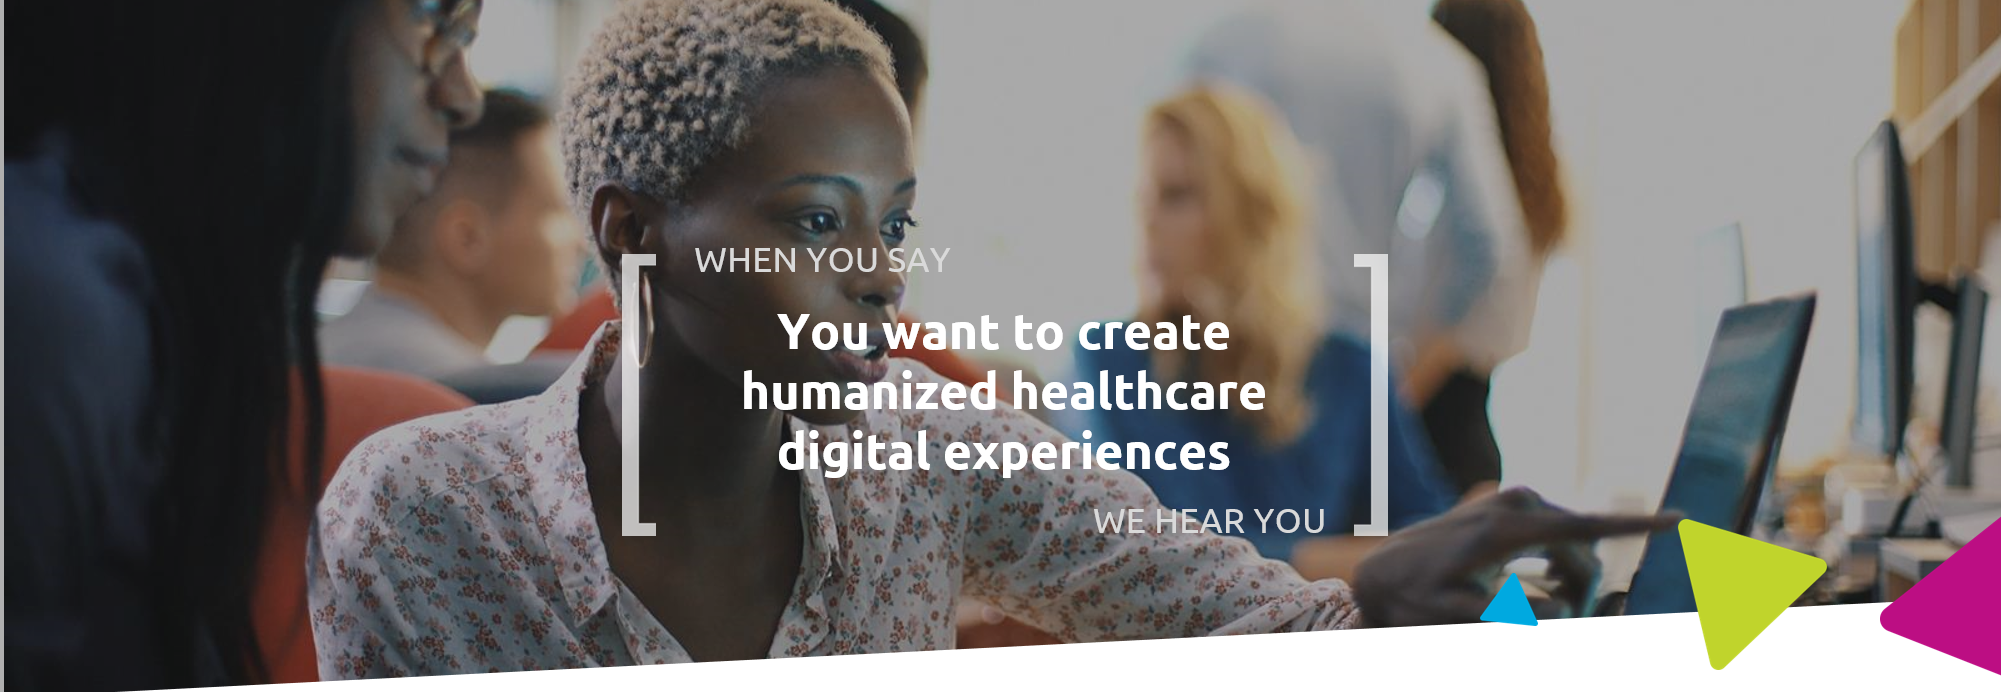 When you say you want to create humanized healthcare digital experiences, we hear you